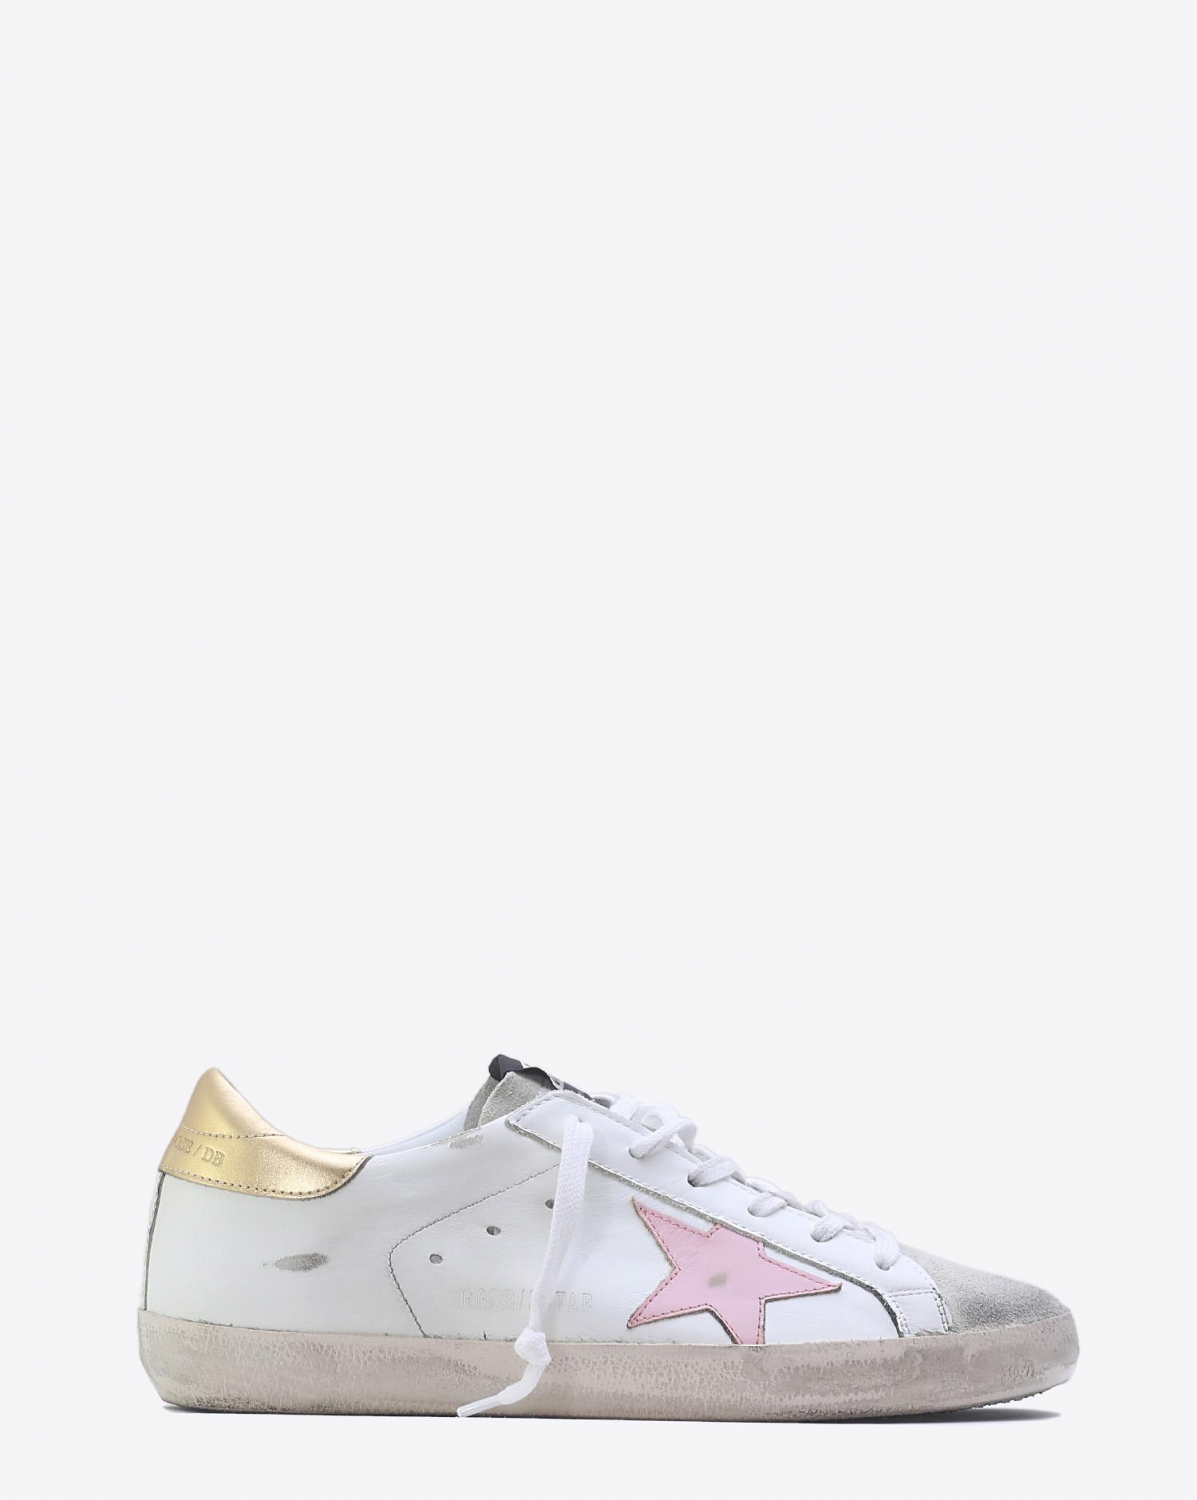 Golden Goose Woman Pré-Collection Sneakers Superstar - White Gold Pink Star